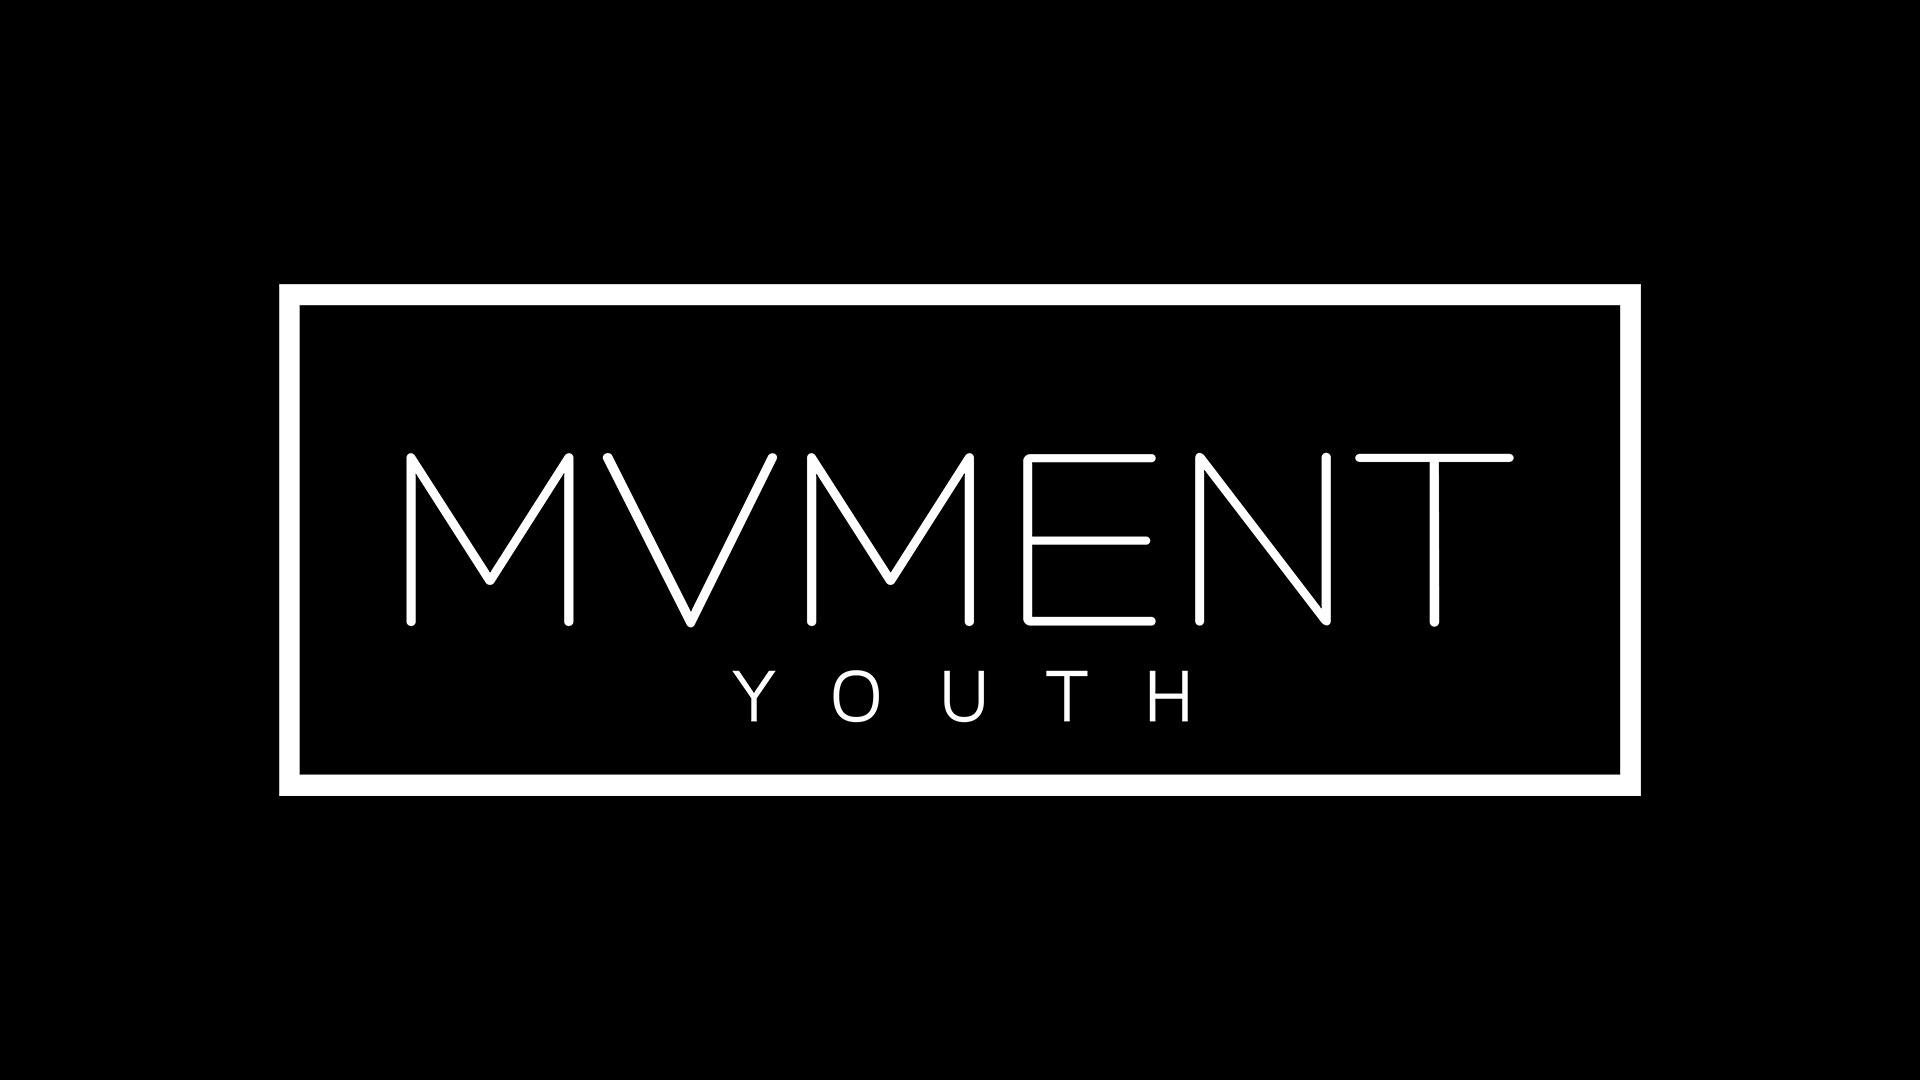 MVMENT Youth